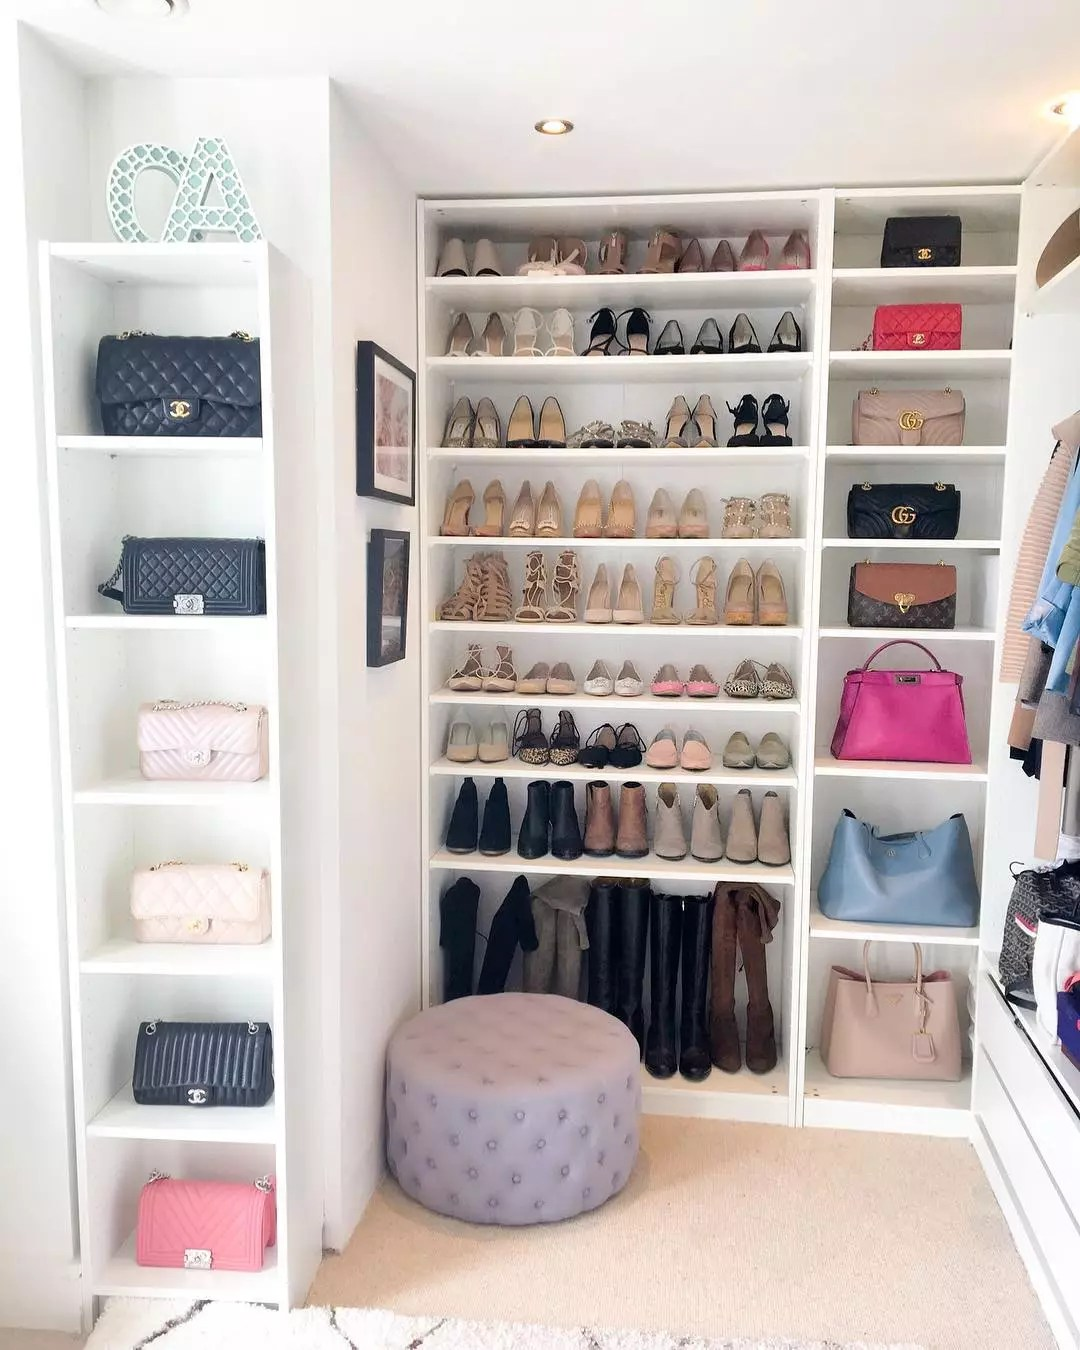 Organized, spacious walk-in closet. Photo by Instagram user @chase_amie